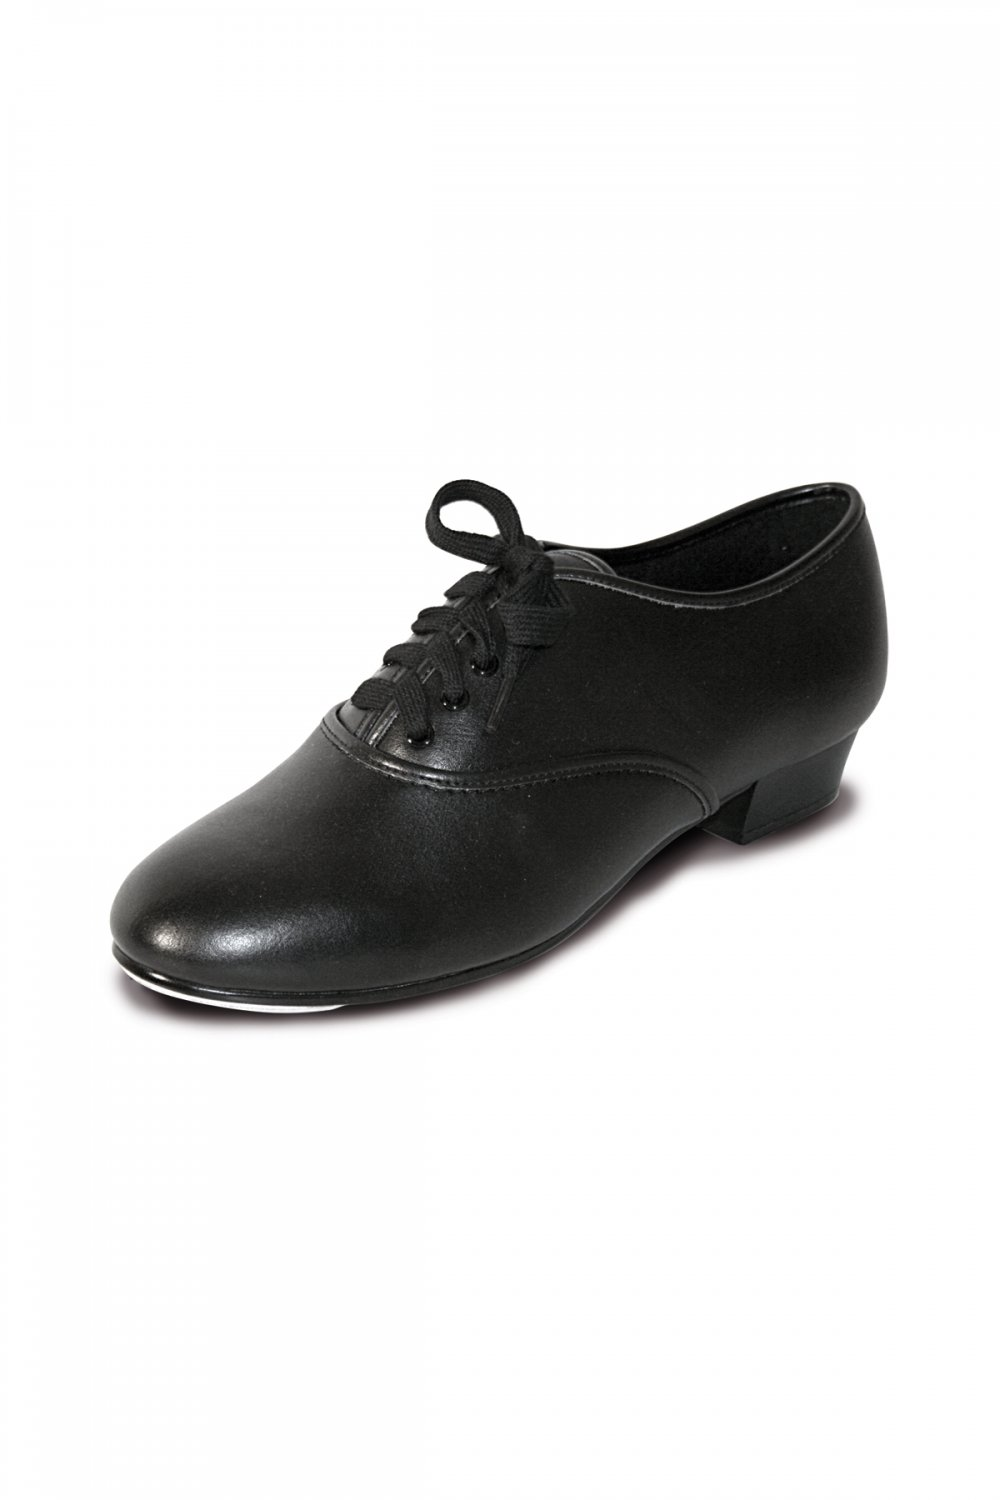 Roch Valley Boys' Oxford Tap Shoes